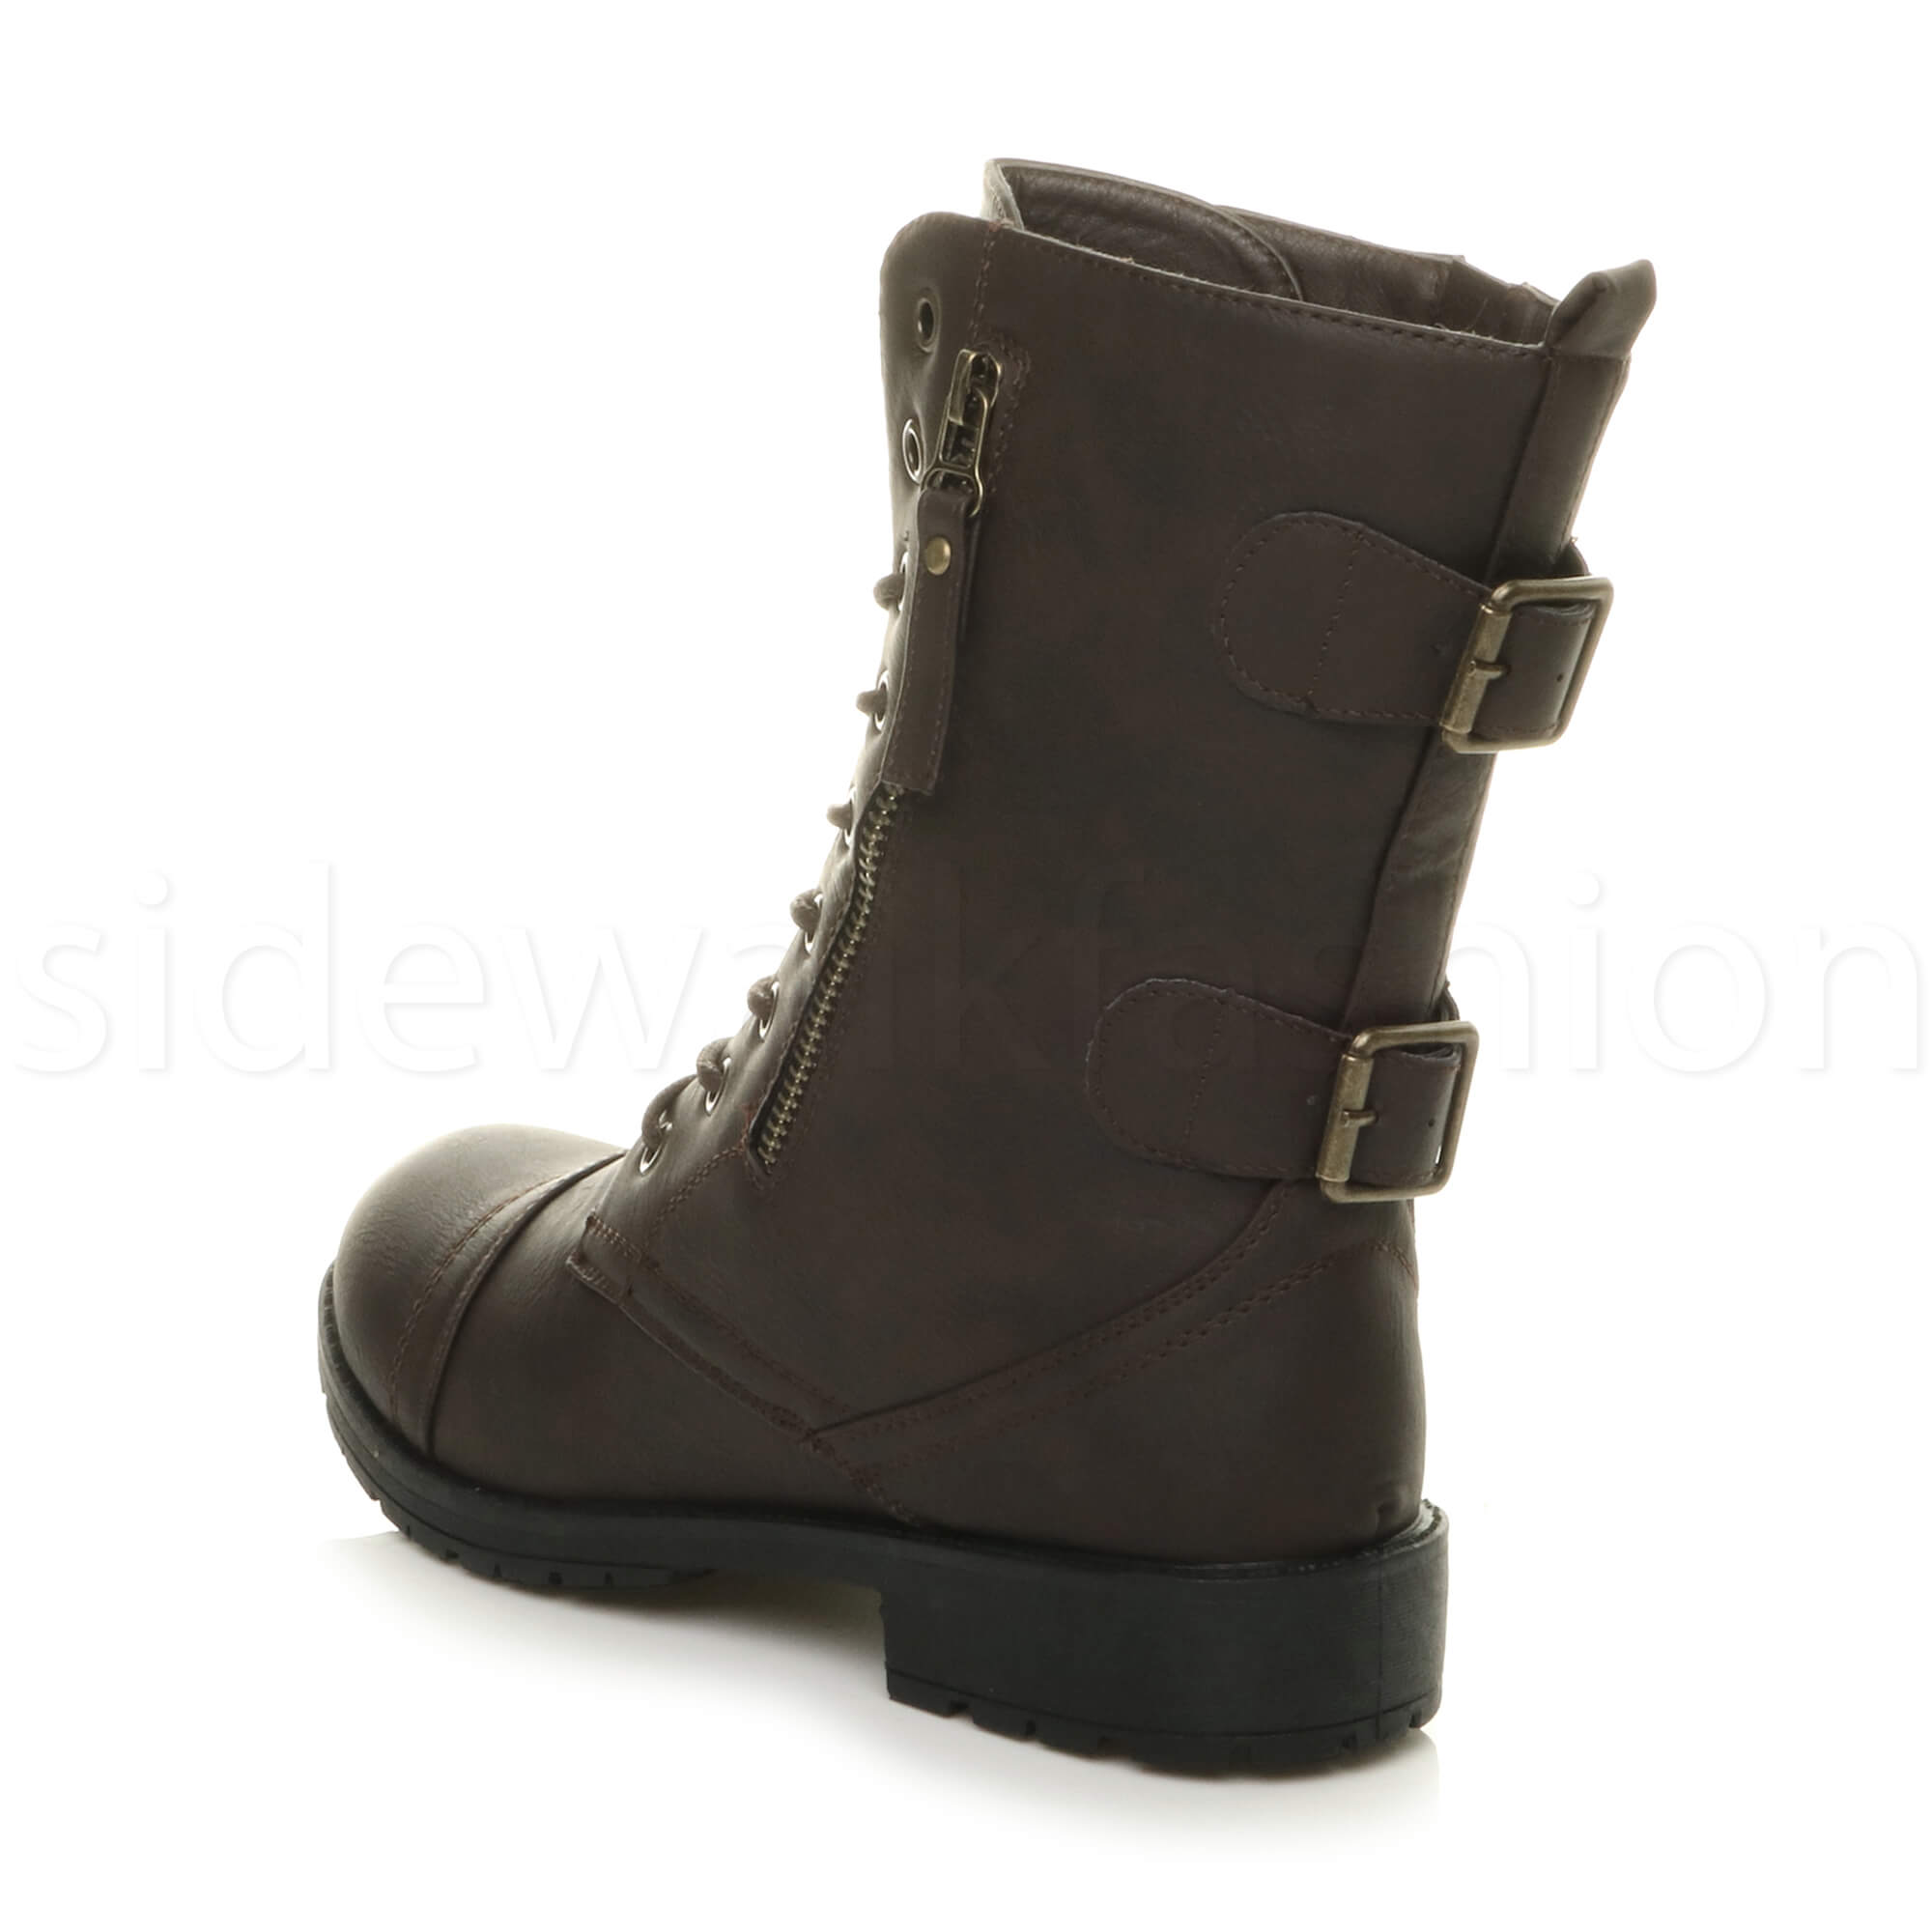 Womens-ladies-low-heel-flat-lace-up-zip-combat-biker-military-ankle-boots-size thumbnail 37